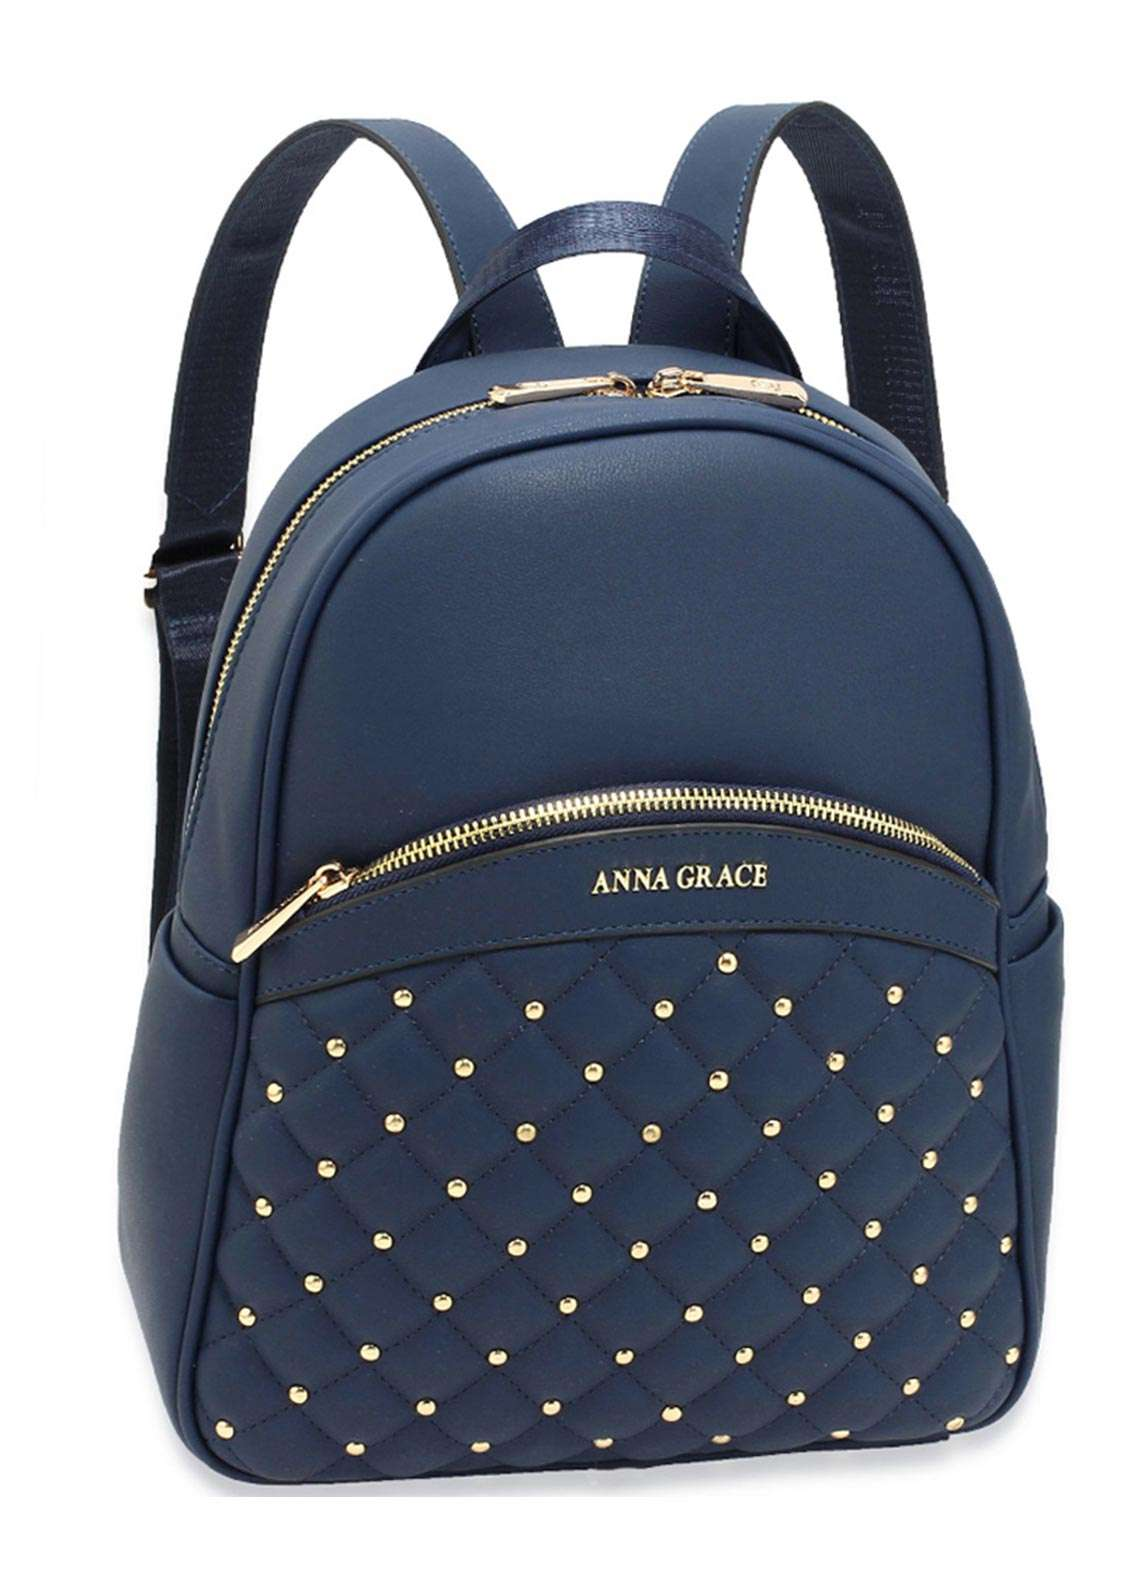 Anna Grace London Faux Leather Backpack Bags  for Women  Navy with Smooth Texture